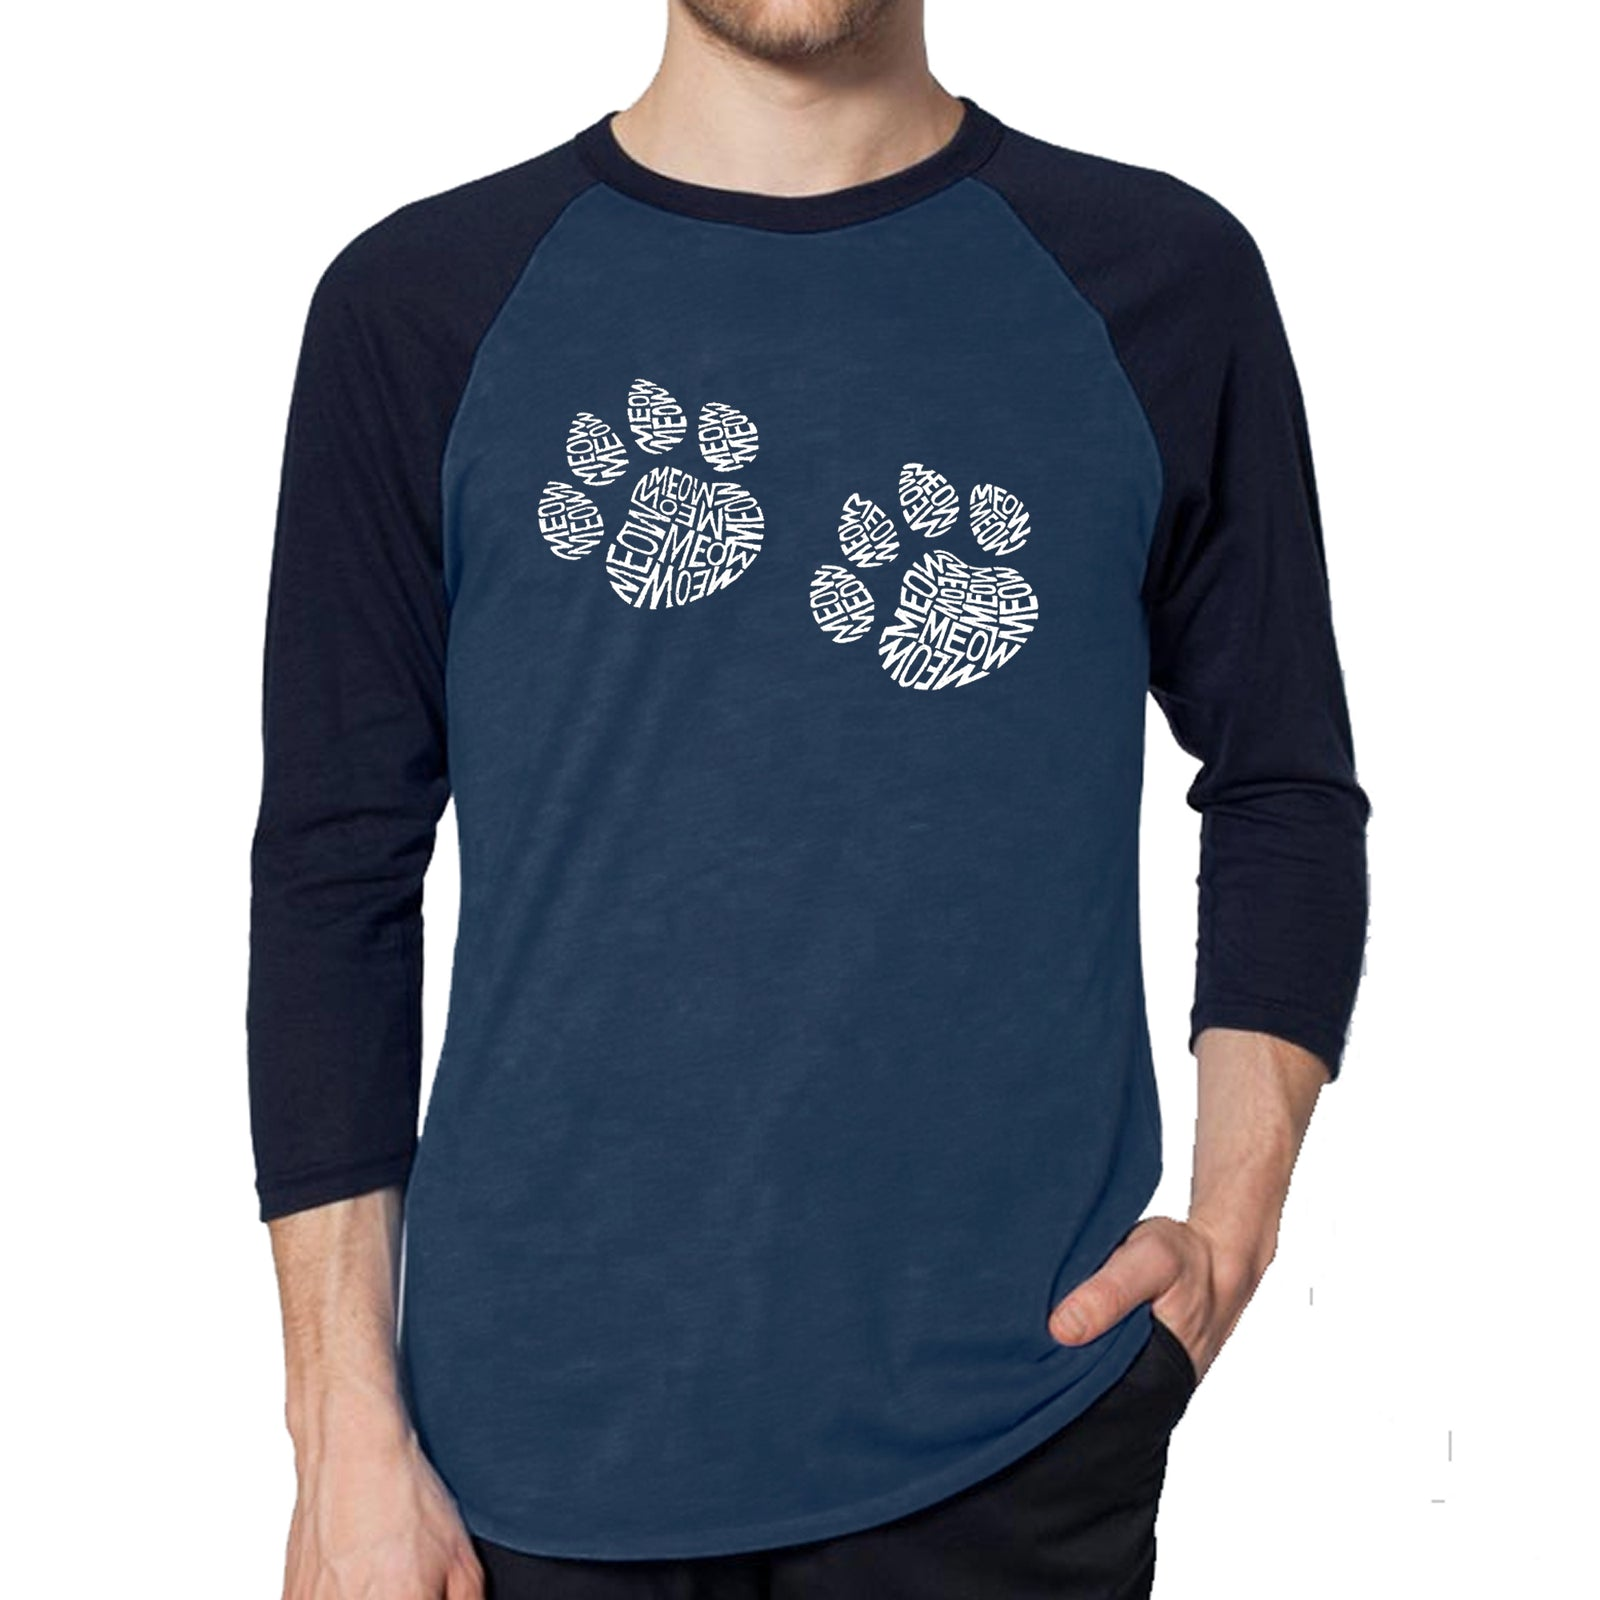 Men's Raglan Baseball Word Art T-shirt - Meow Cat Prints